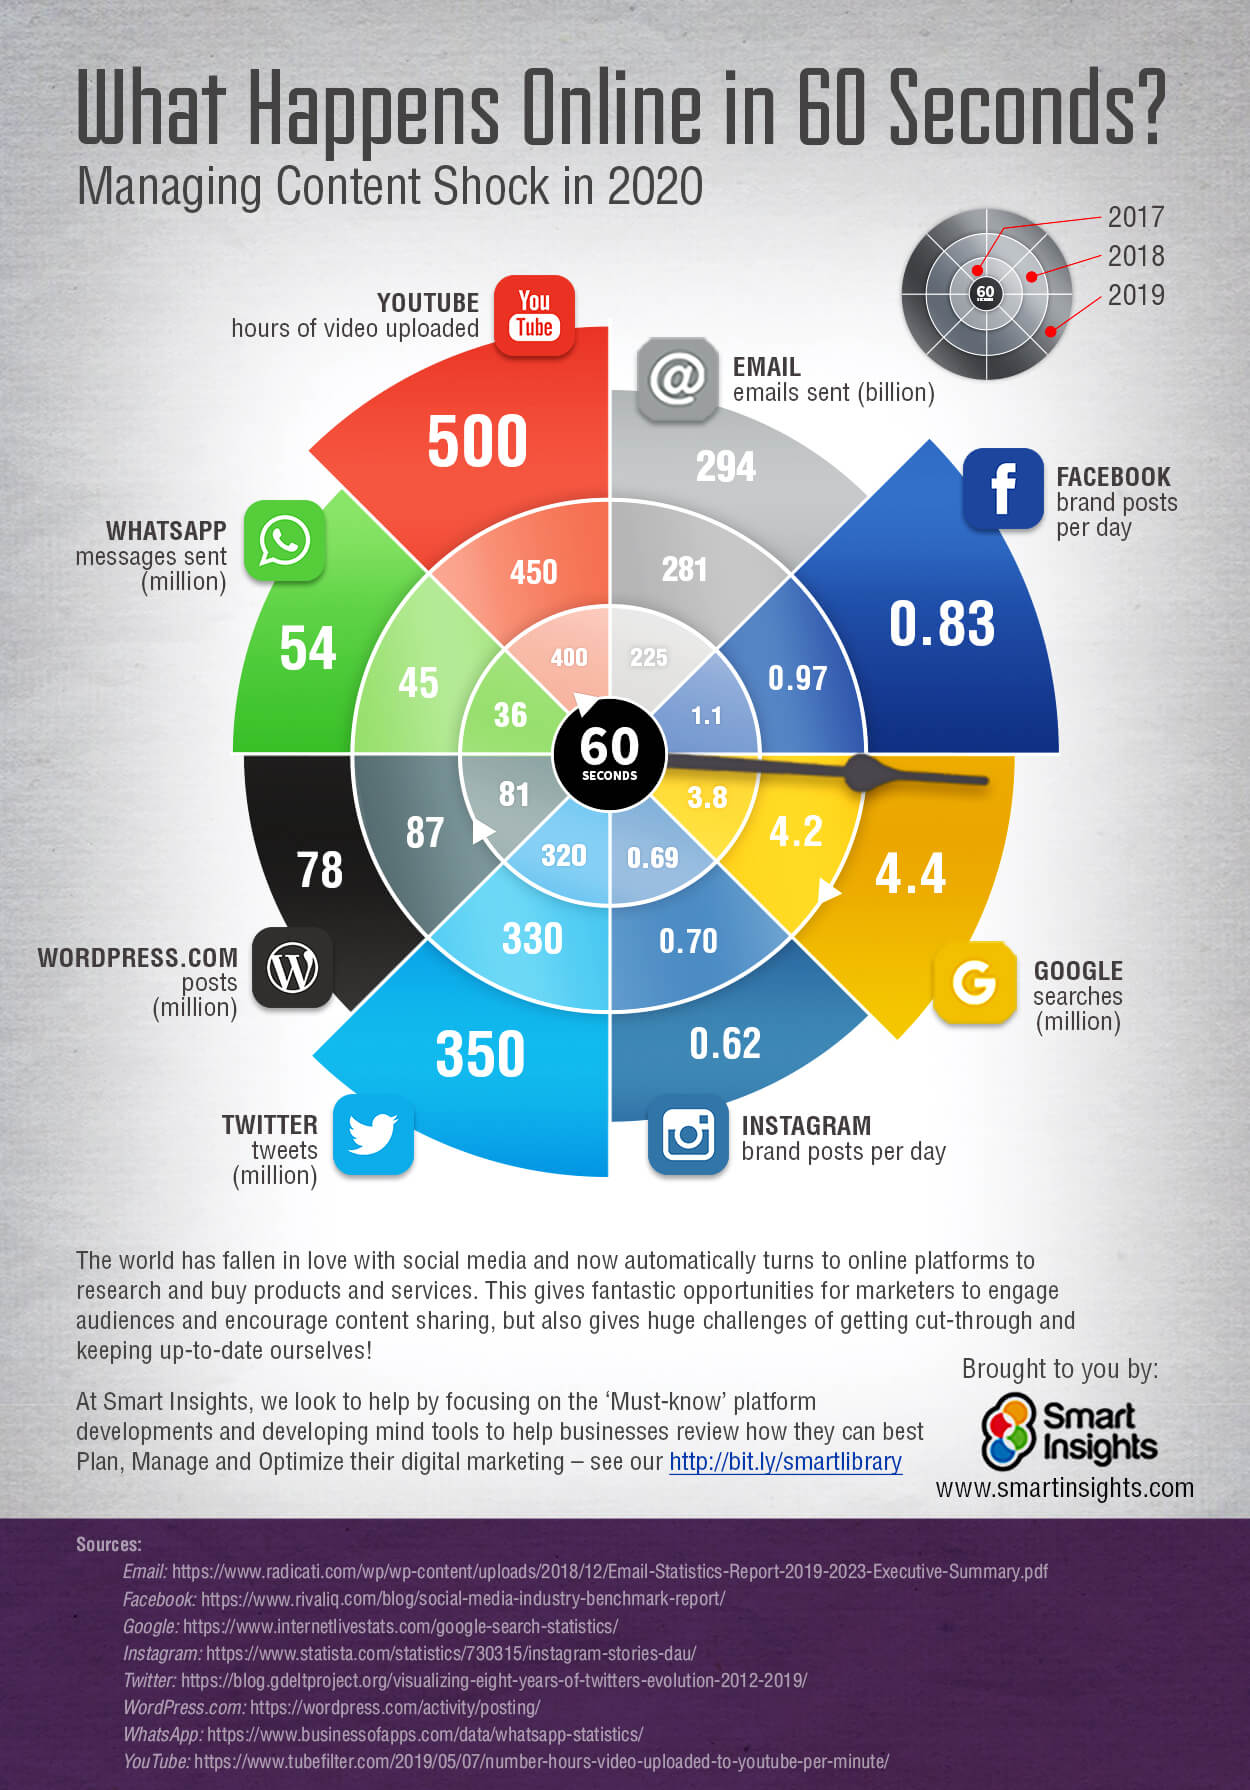 What happens in 60 seconds online